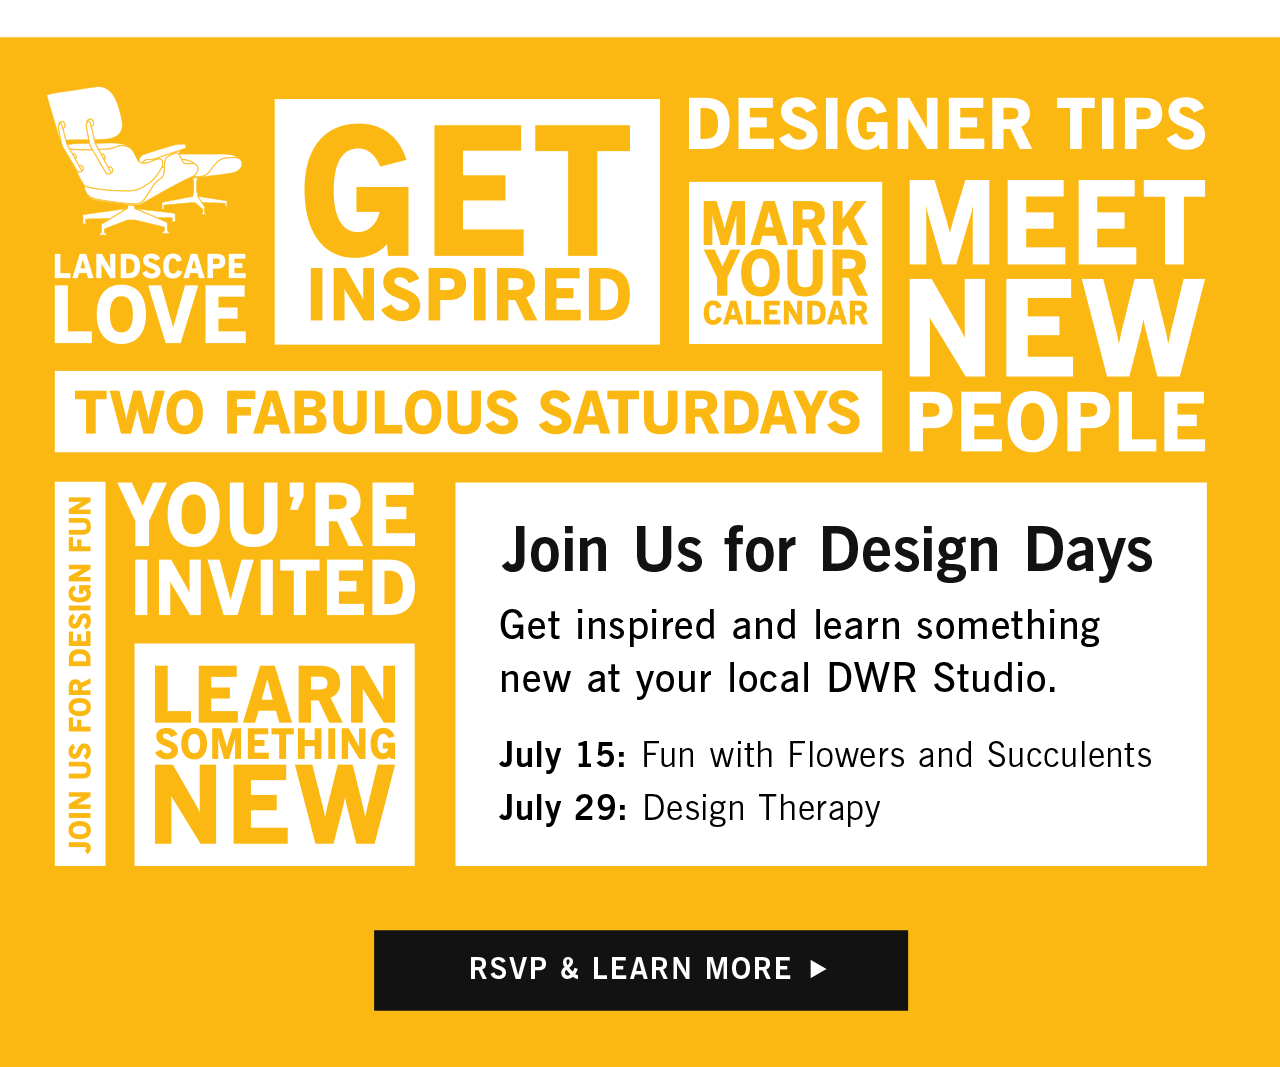 Join Us for Design Days